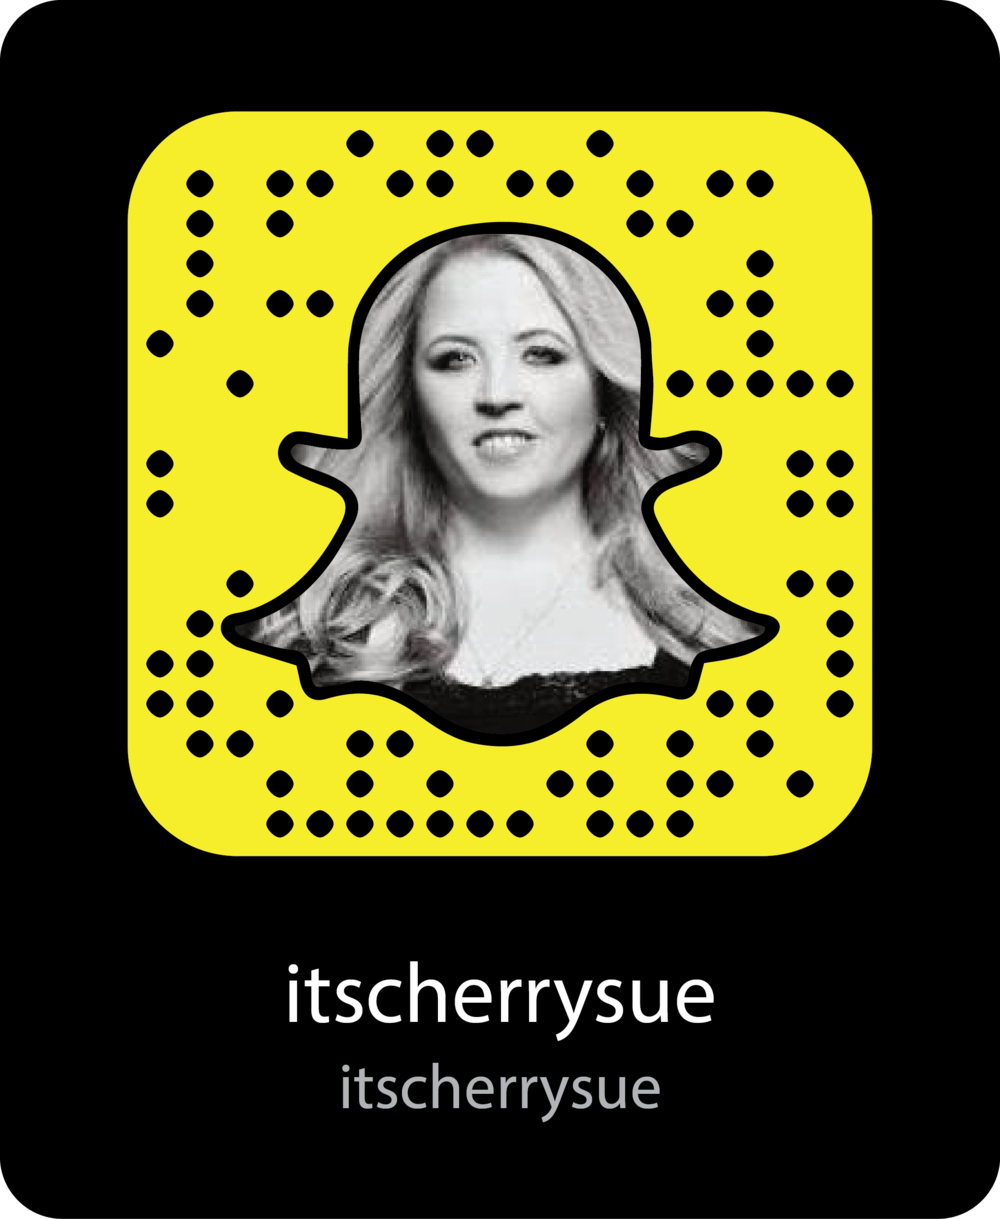 itscherrysue-Beauty-Bloggers-snapchat-snapcode.png